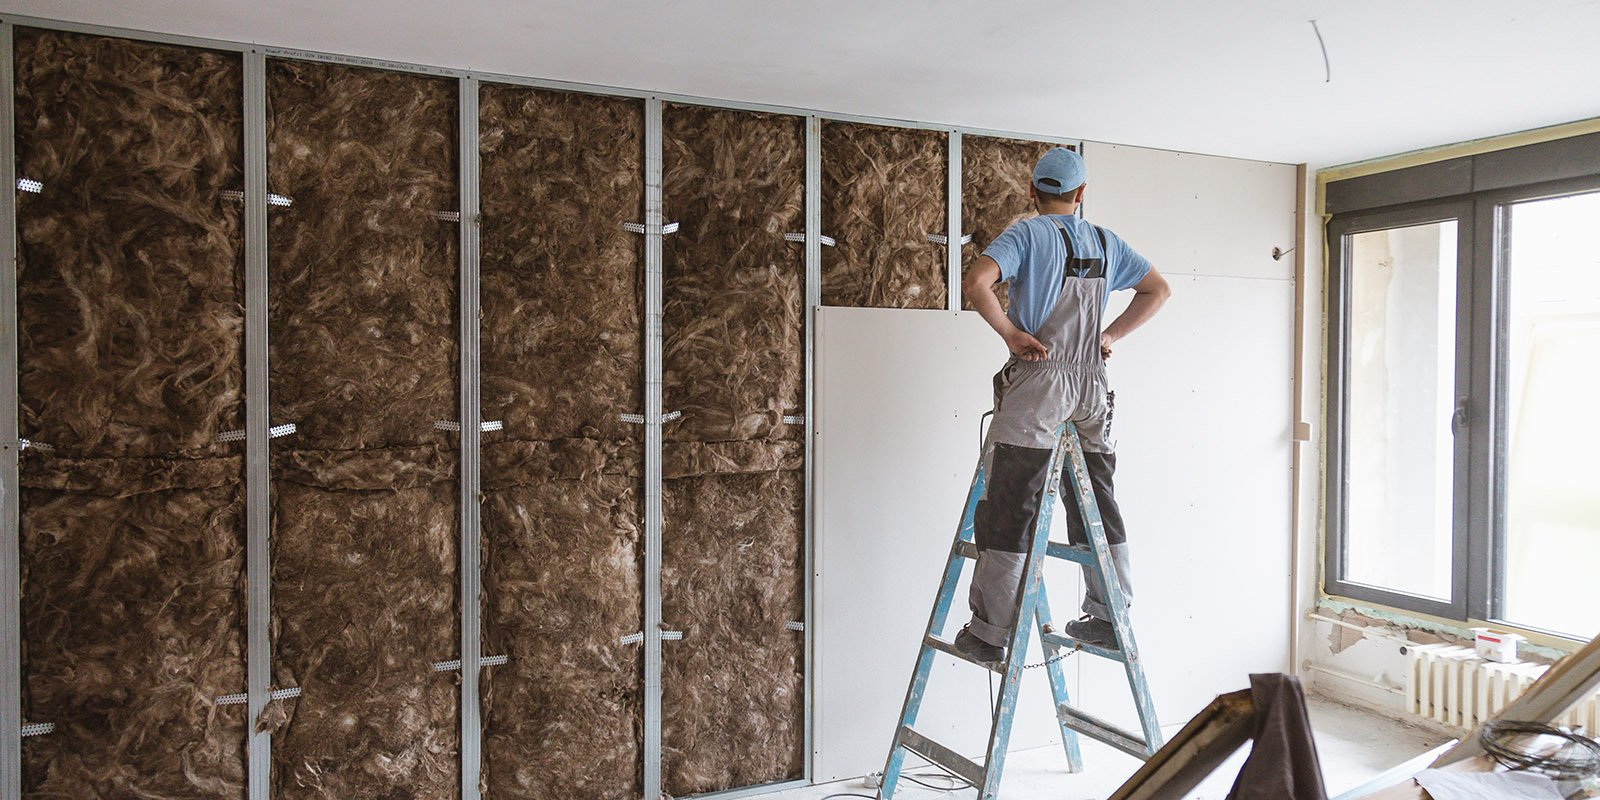 How Much Does Drywall Installation or Repair Cost?